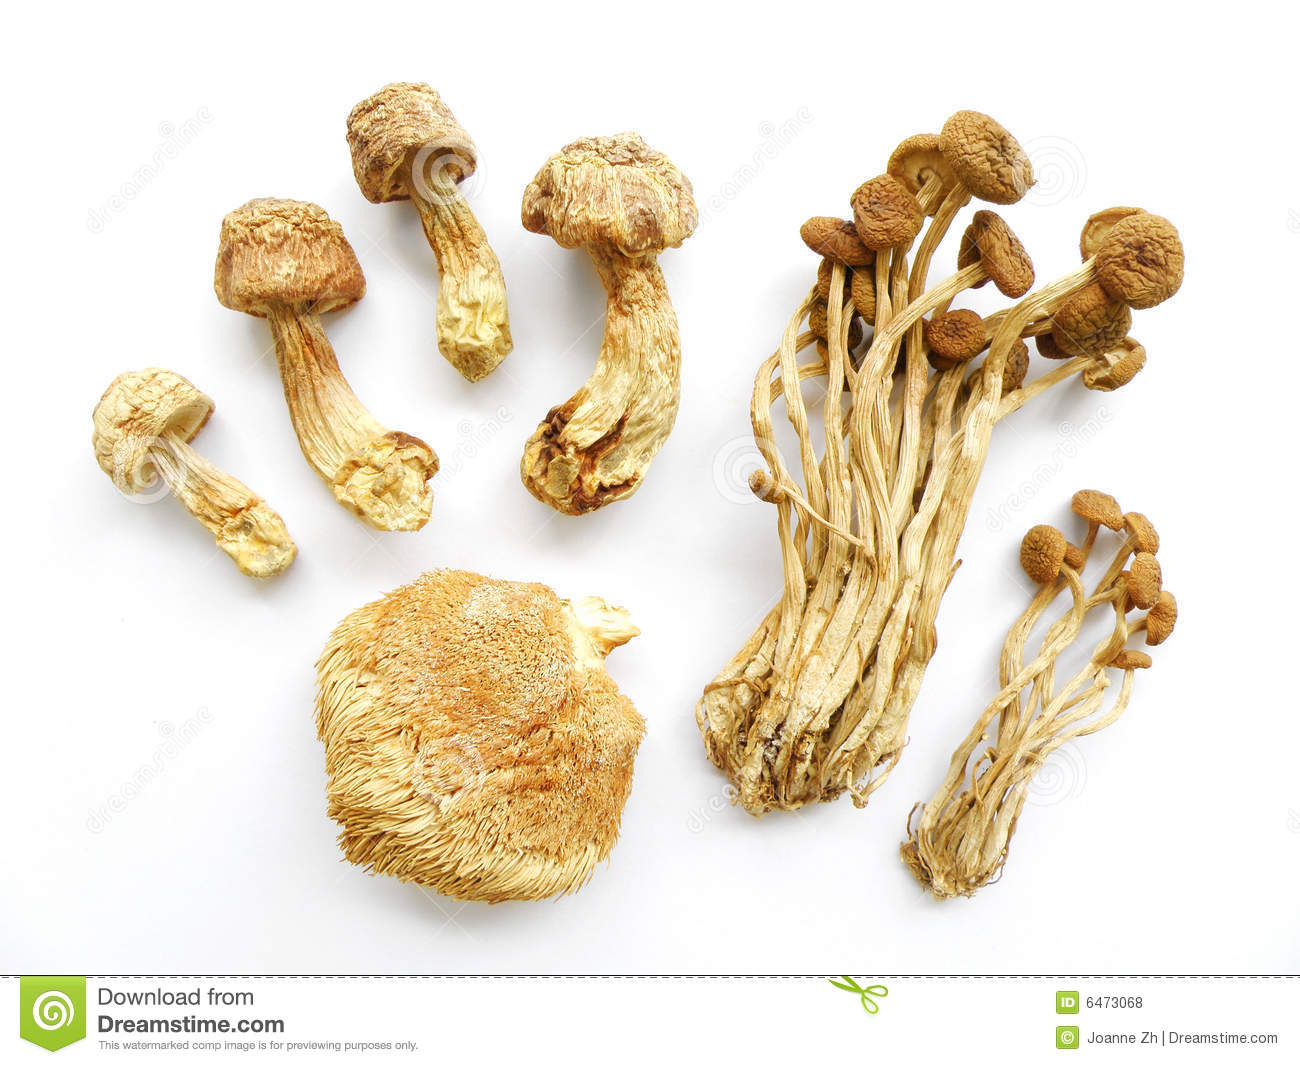 Assorted mushrooms, dried